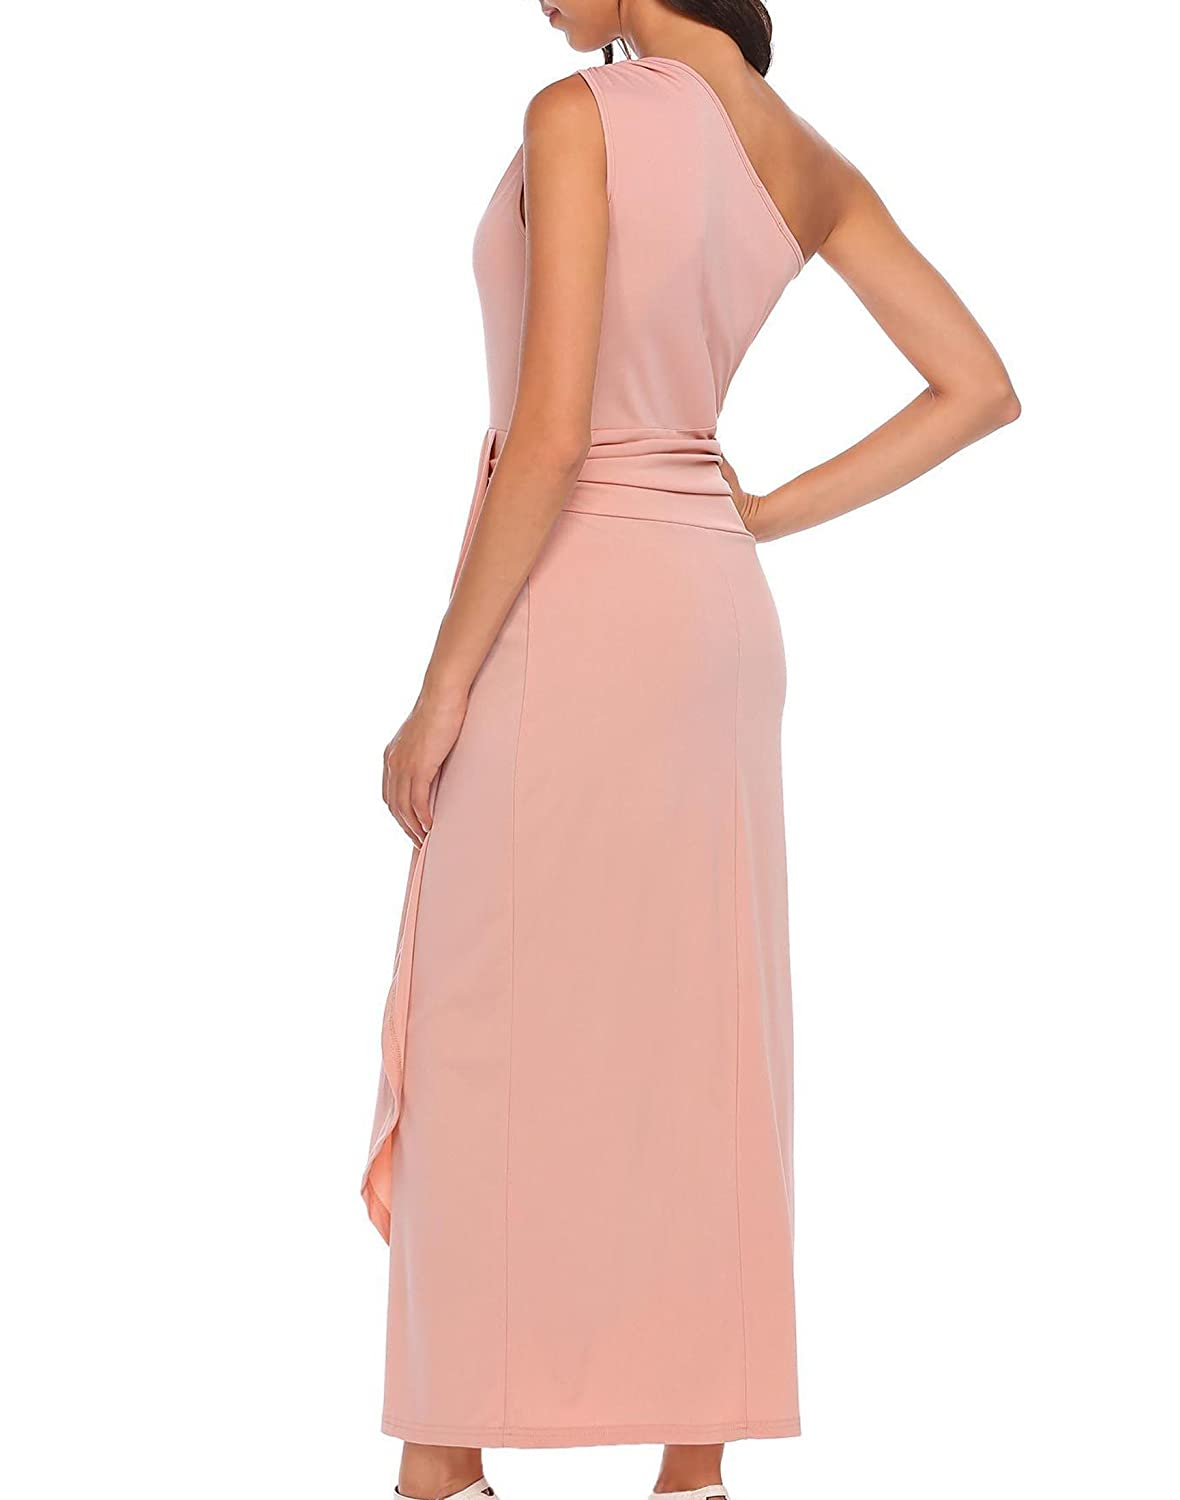 Meaneor Womens One Shoulder Draped Waist Ruched wrap Evening Formal Ball Dress: Amazon.co.uk: Clothing